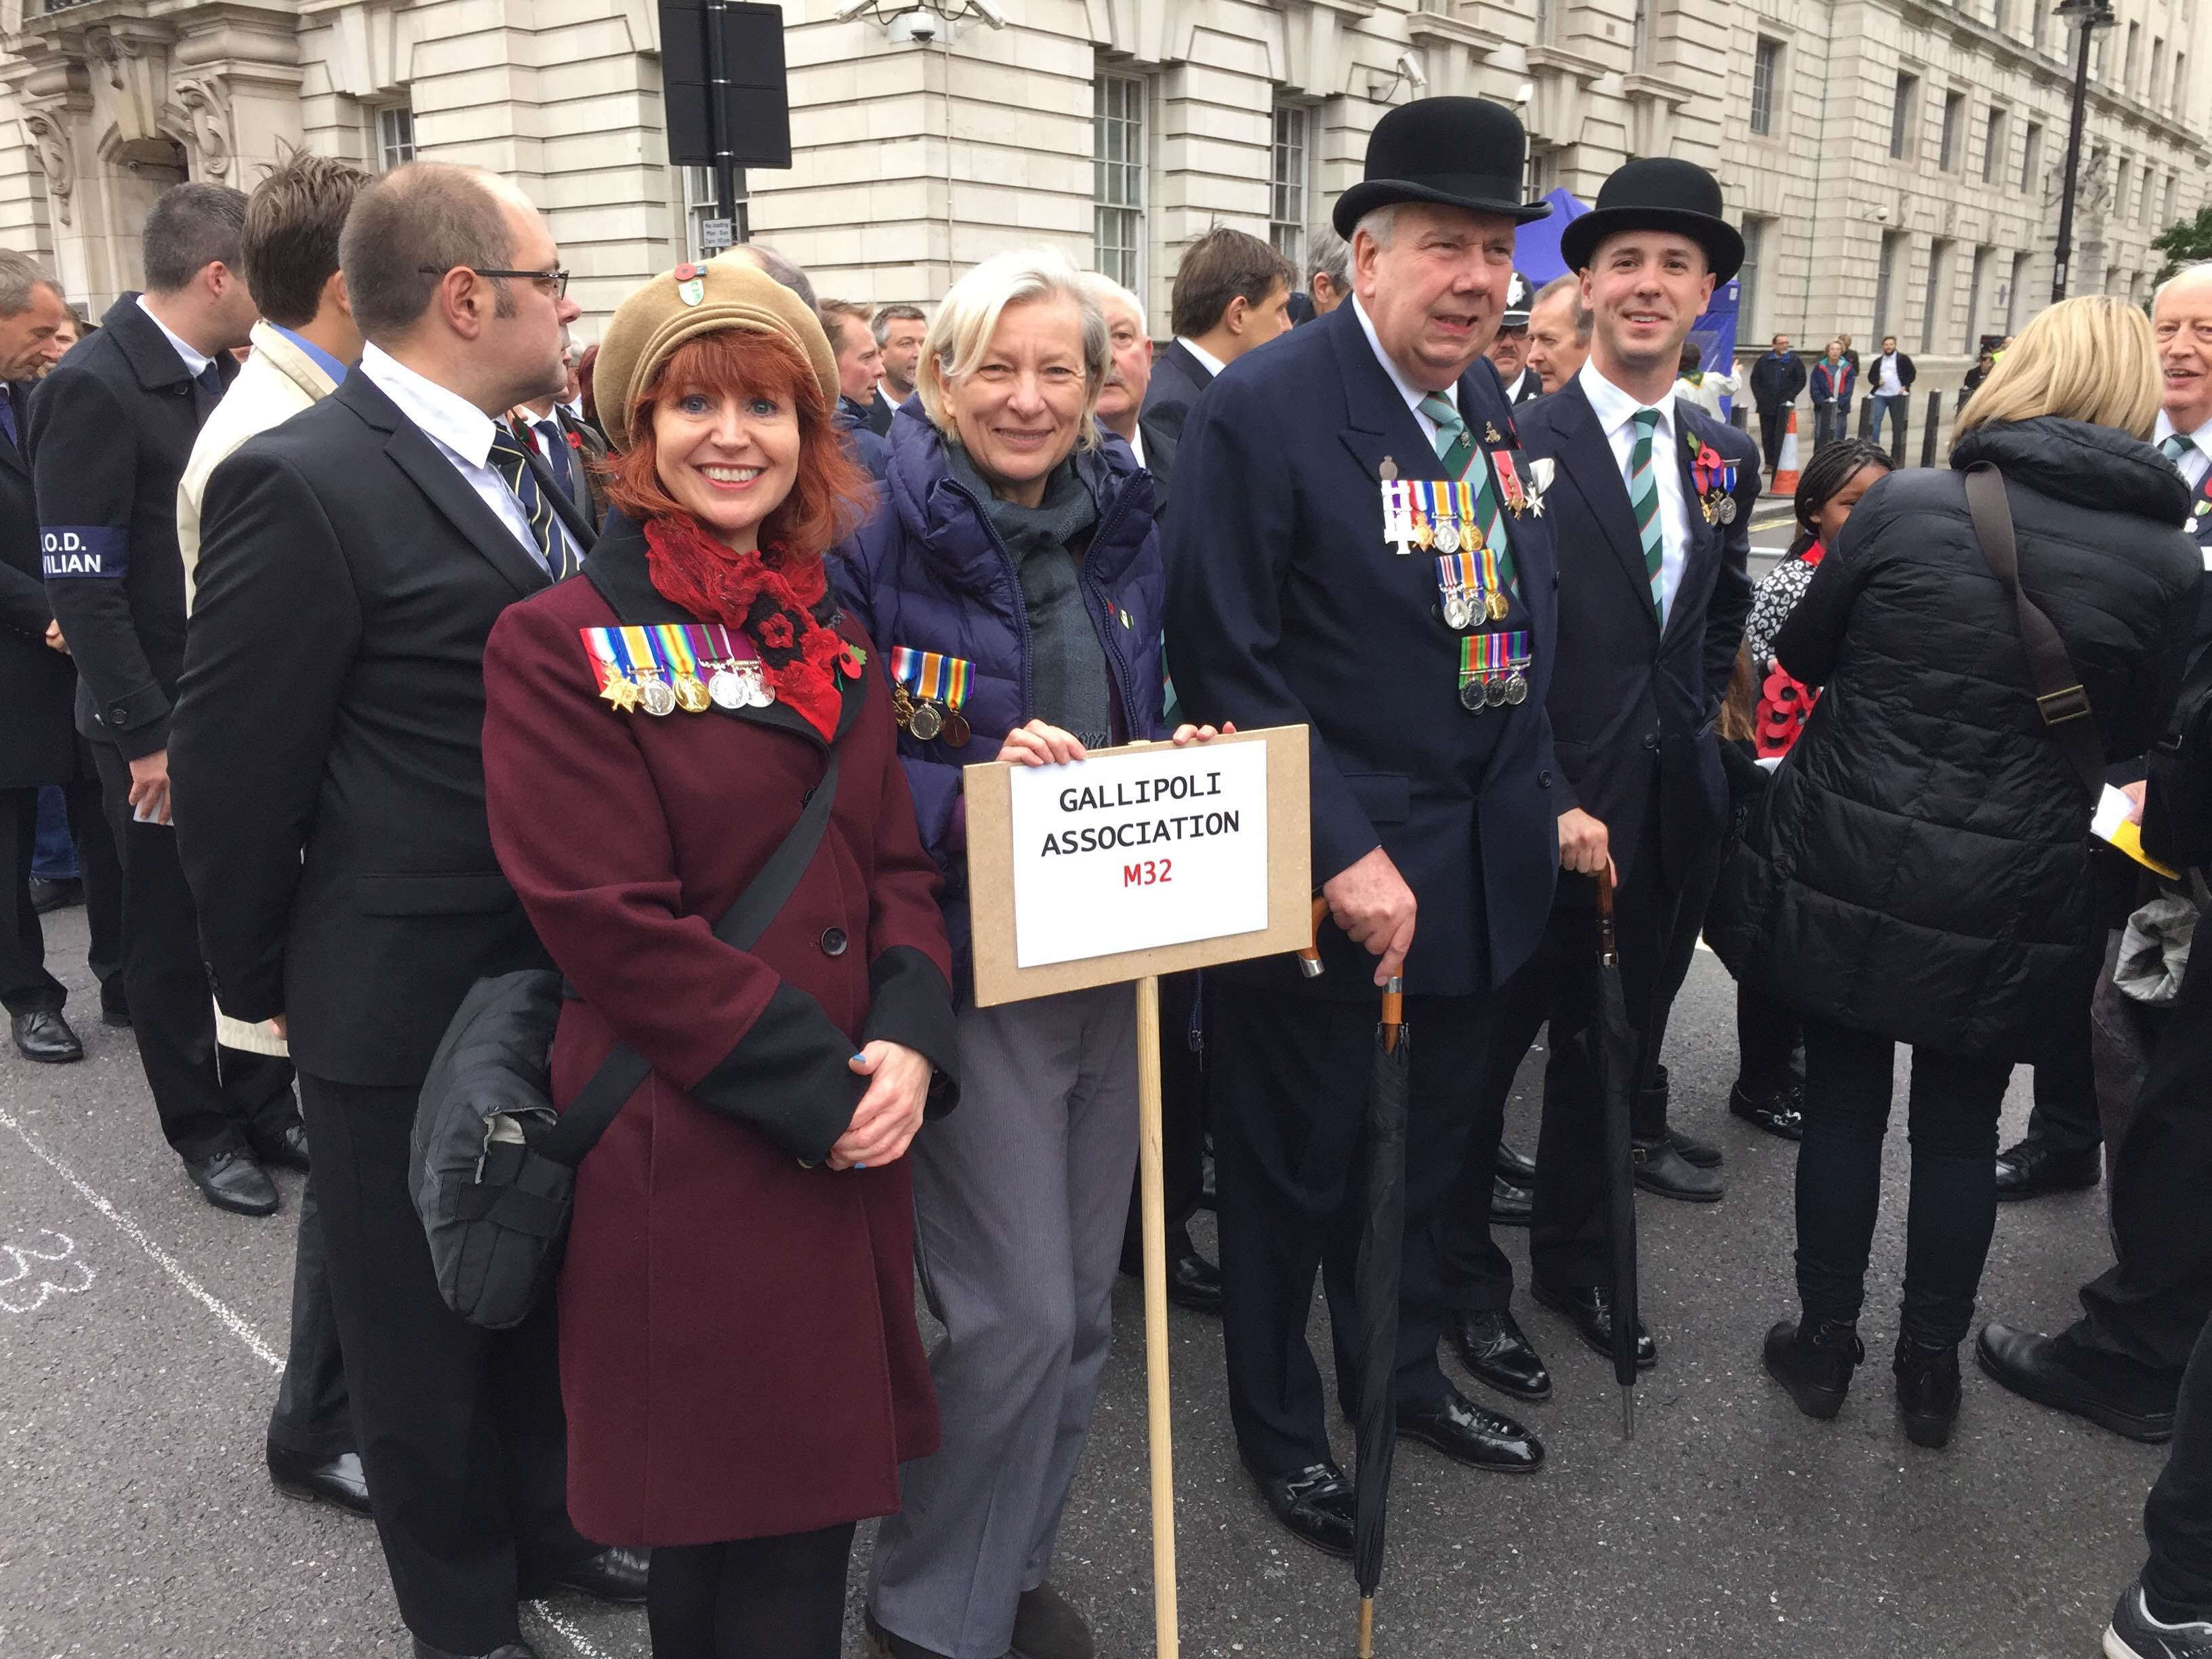 Gallipoli Association contingent forming up at Whitehall